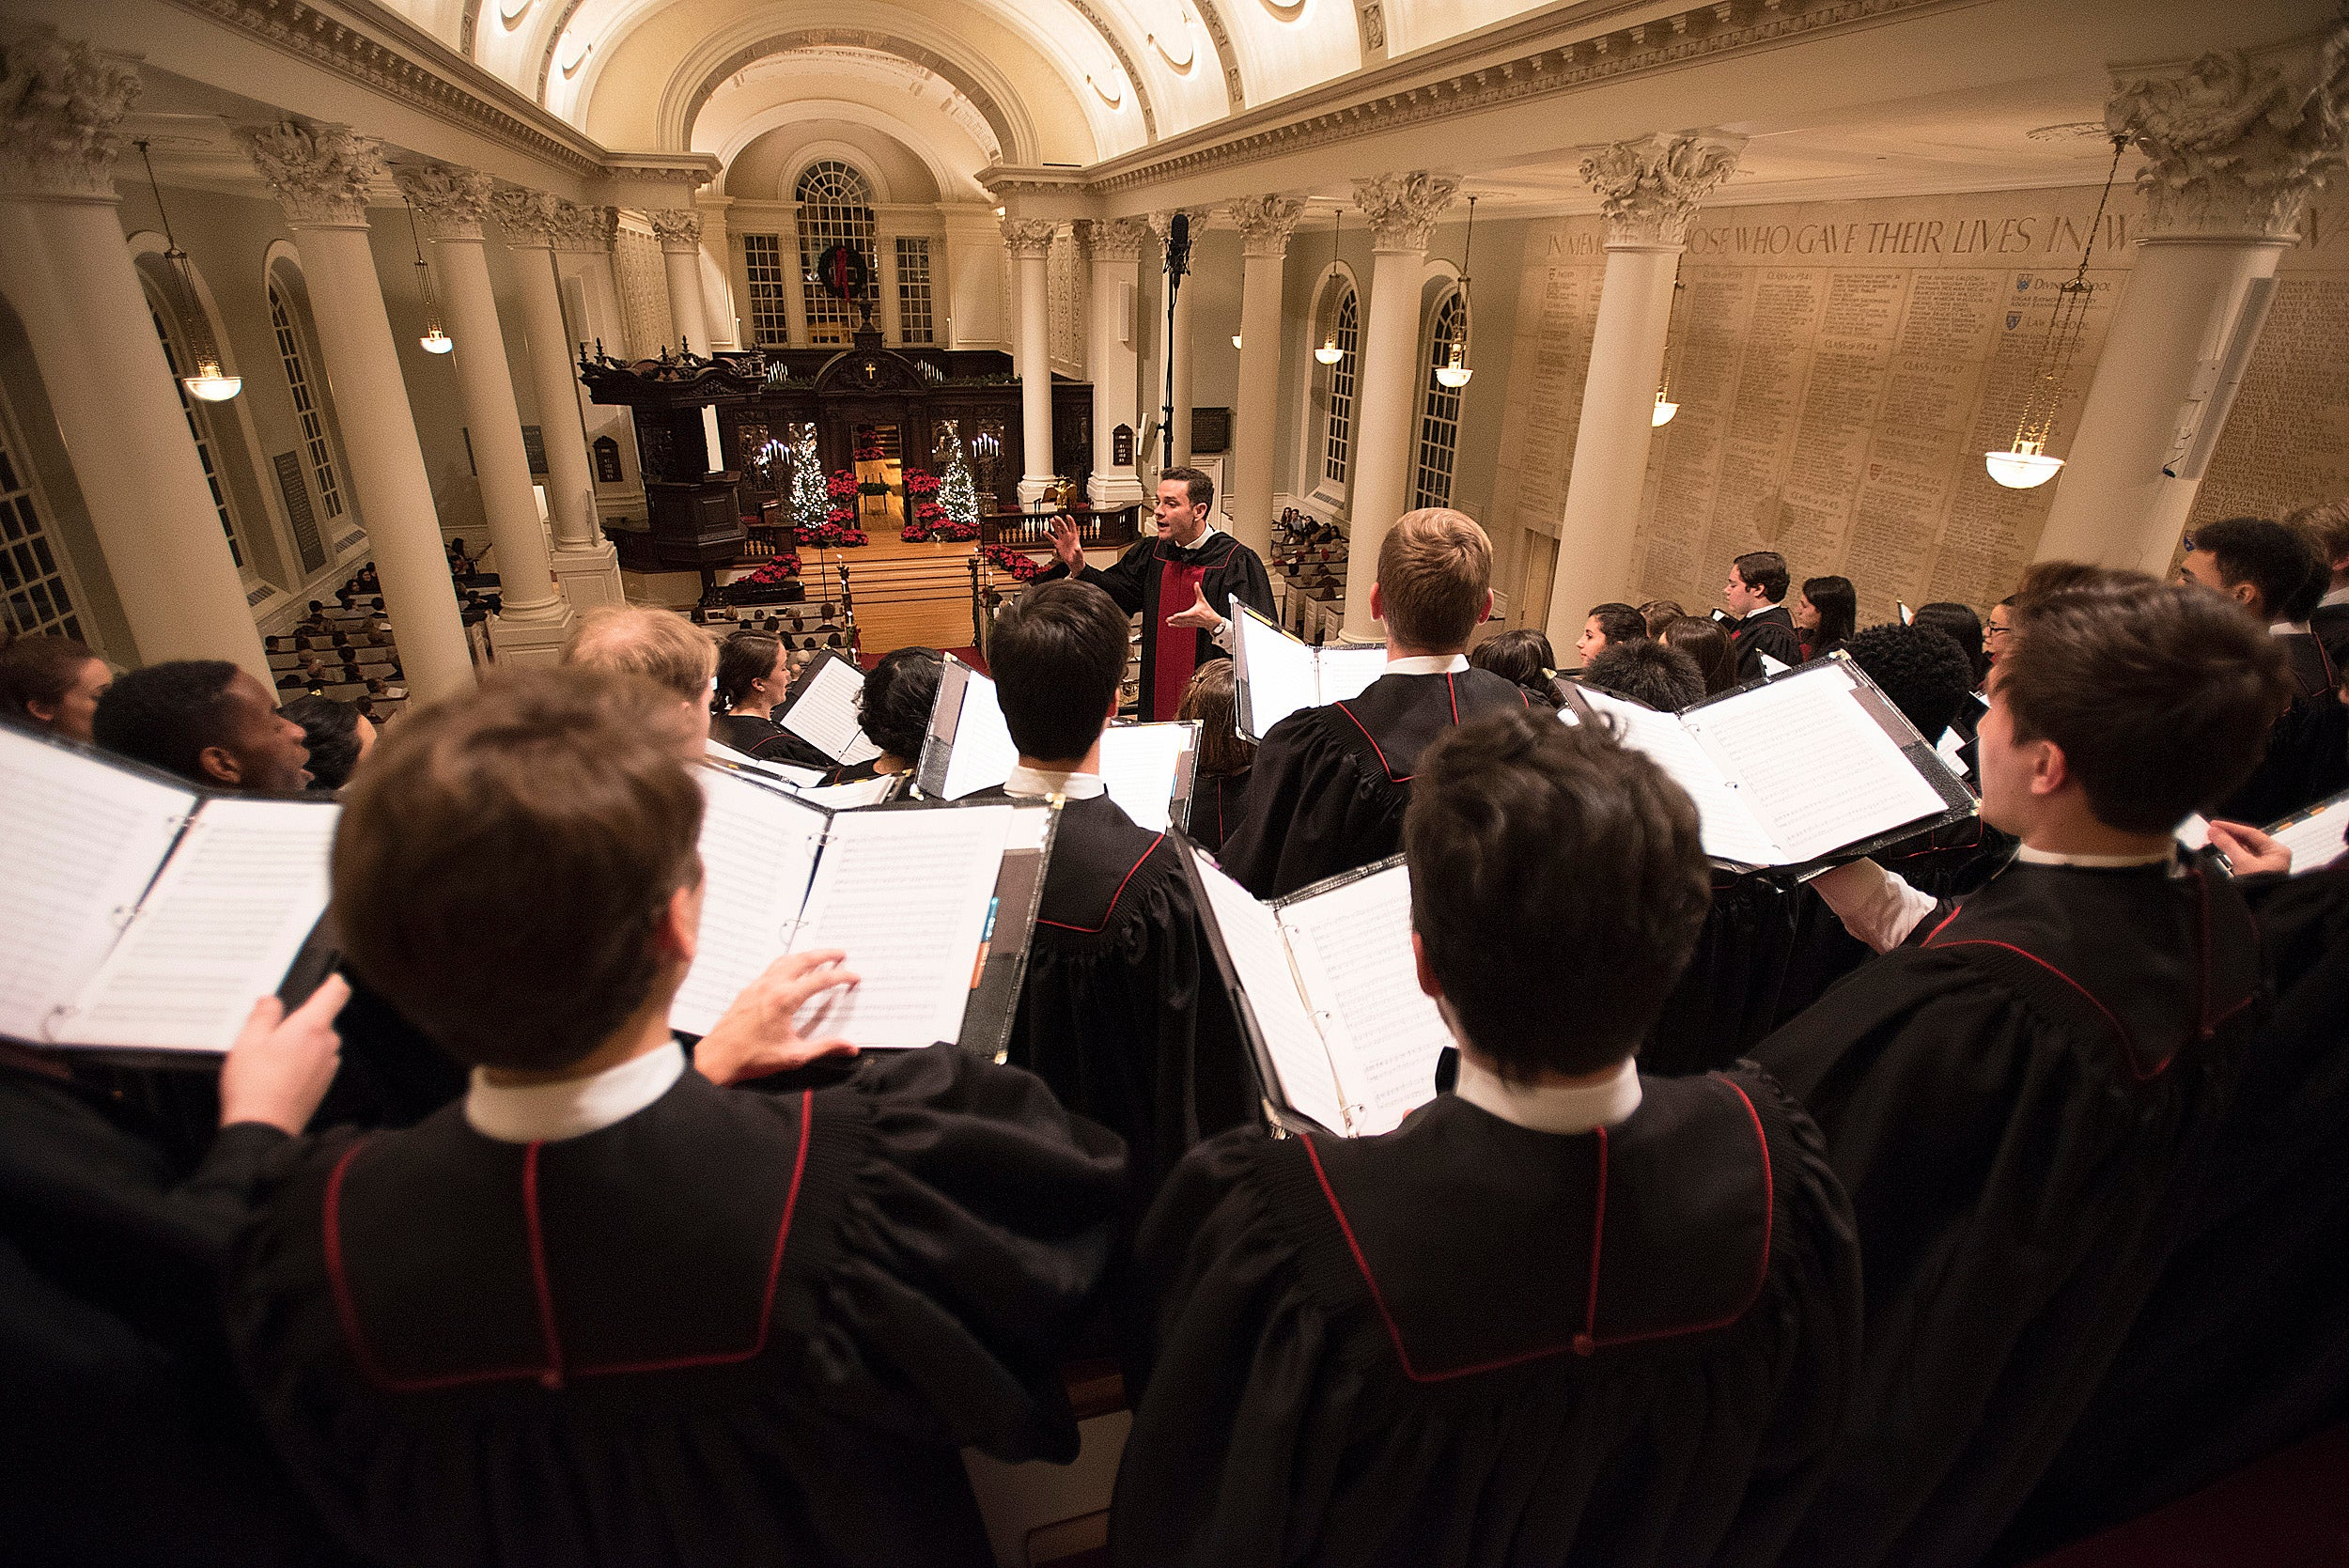 Choirmaster conducts Harvard choir during Christmas service in Memorial Church.